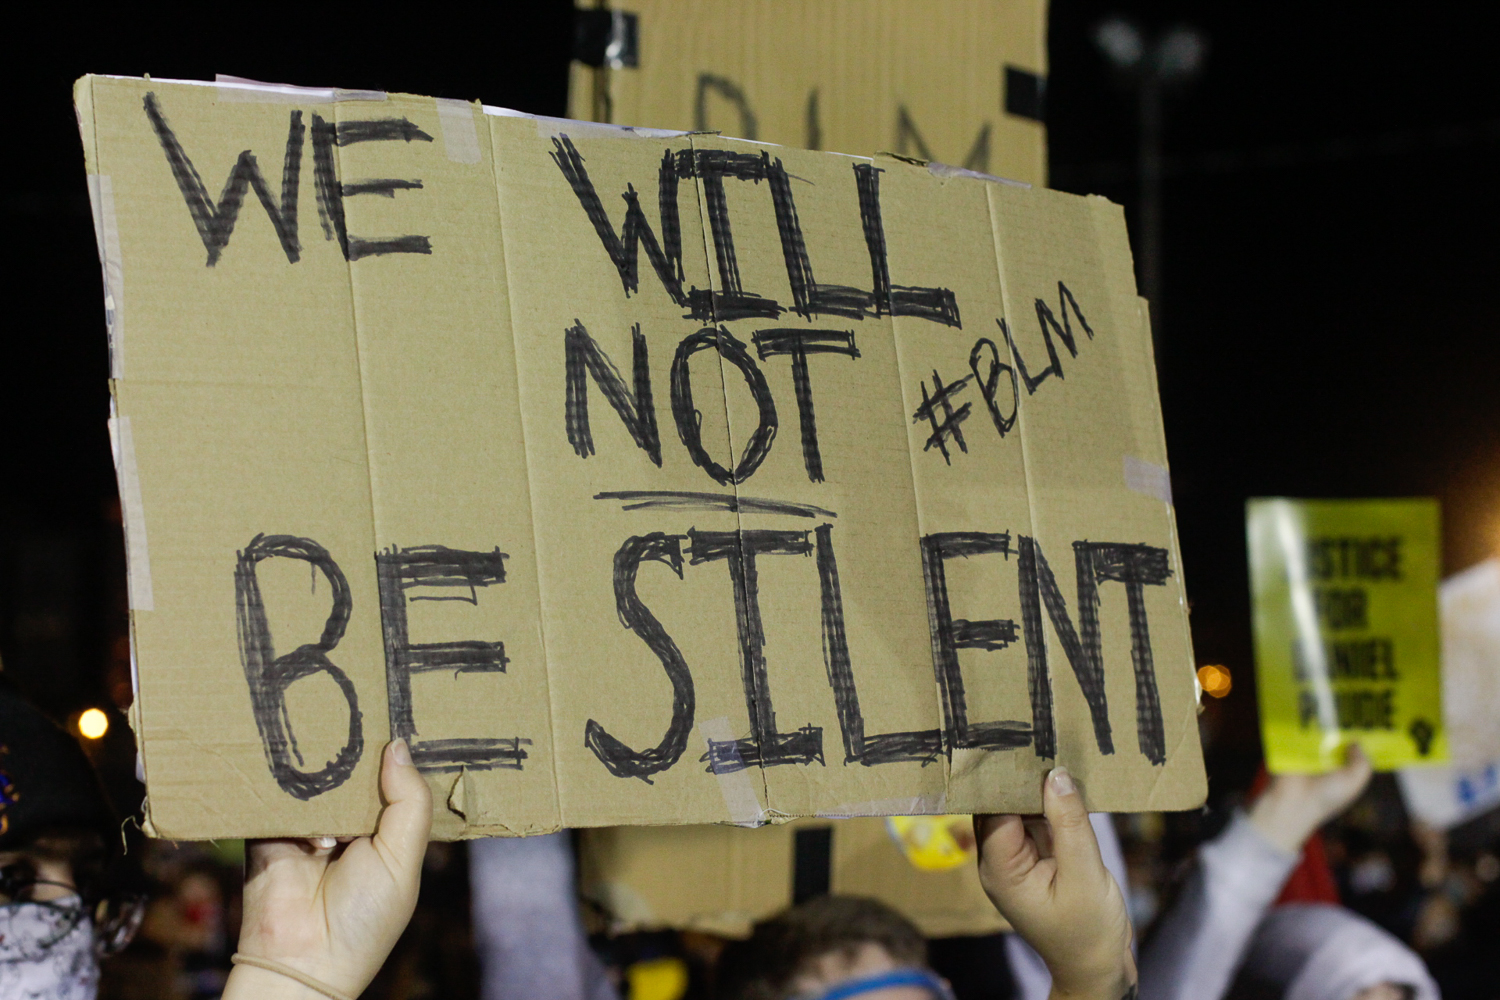 Protestors, blinded by police floodlights, chanted in front of the Public Safety Building on Friday, September 11, 2020. Many of the protestors' signs repeated the same few phrases.